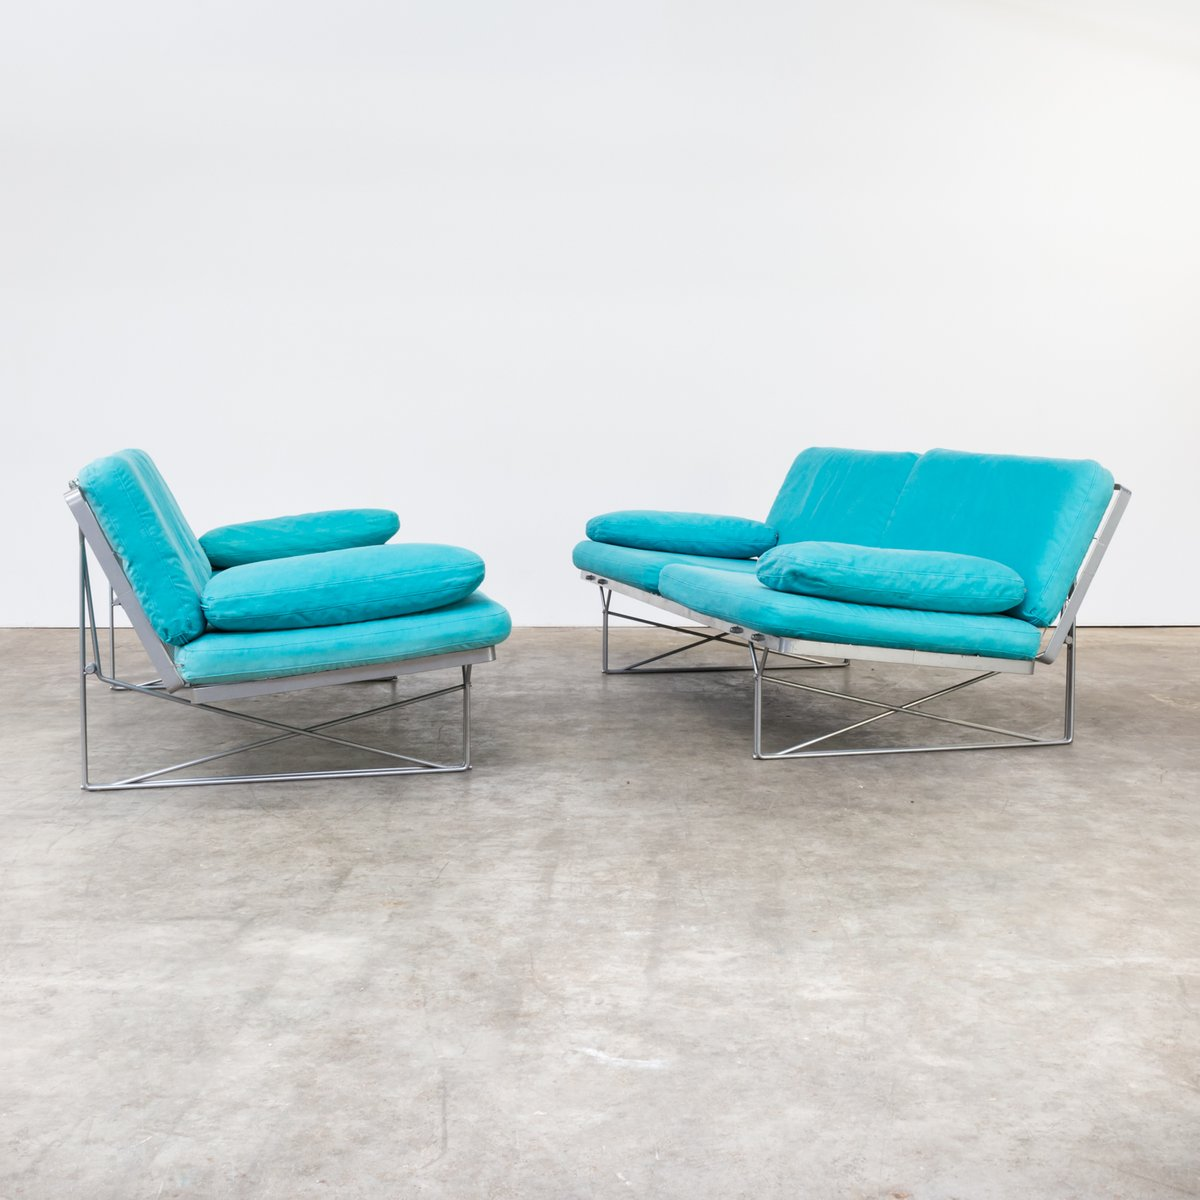 Moment sofas by niels gammelgaard for ikea 1985 set of 2 for sale at pamono Ikea moment sofa